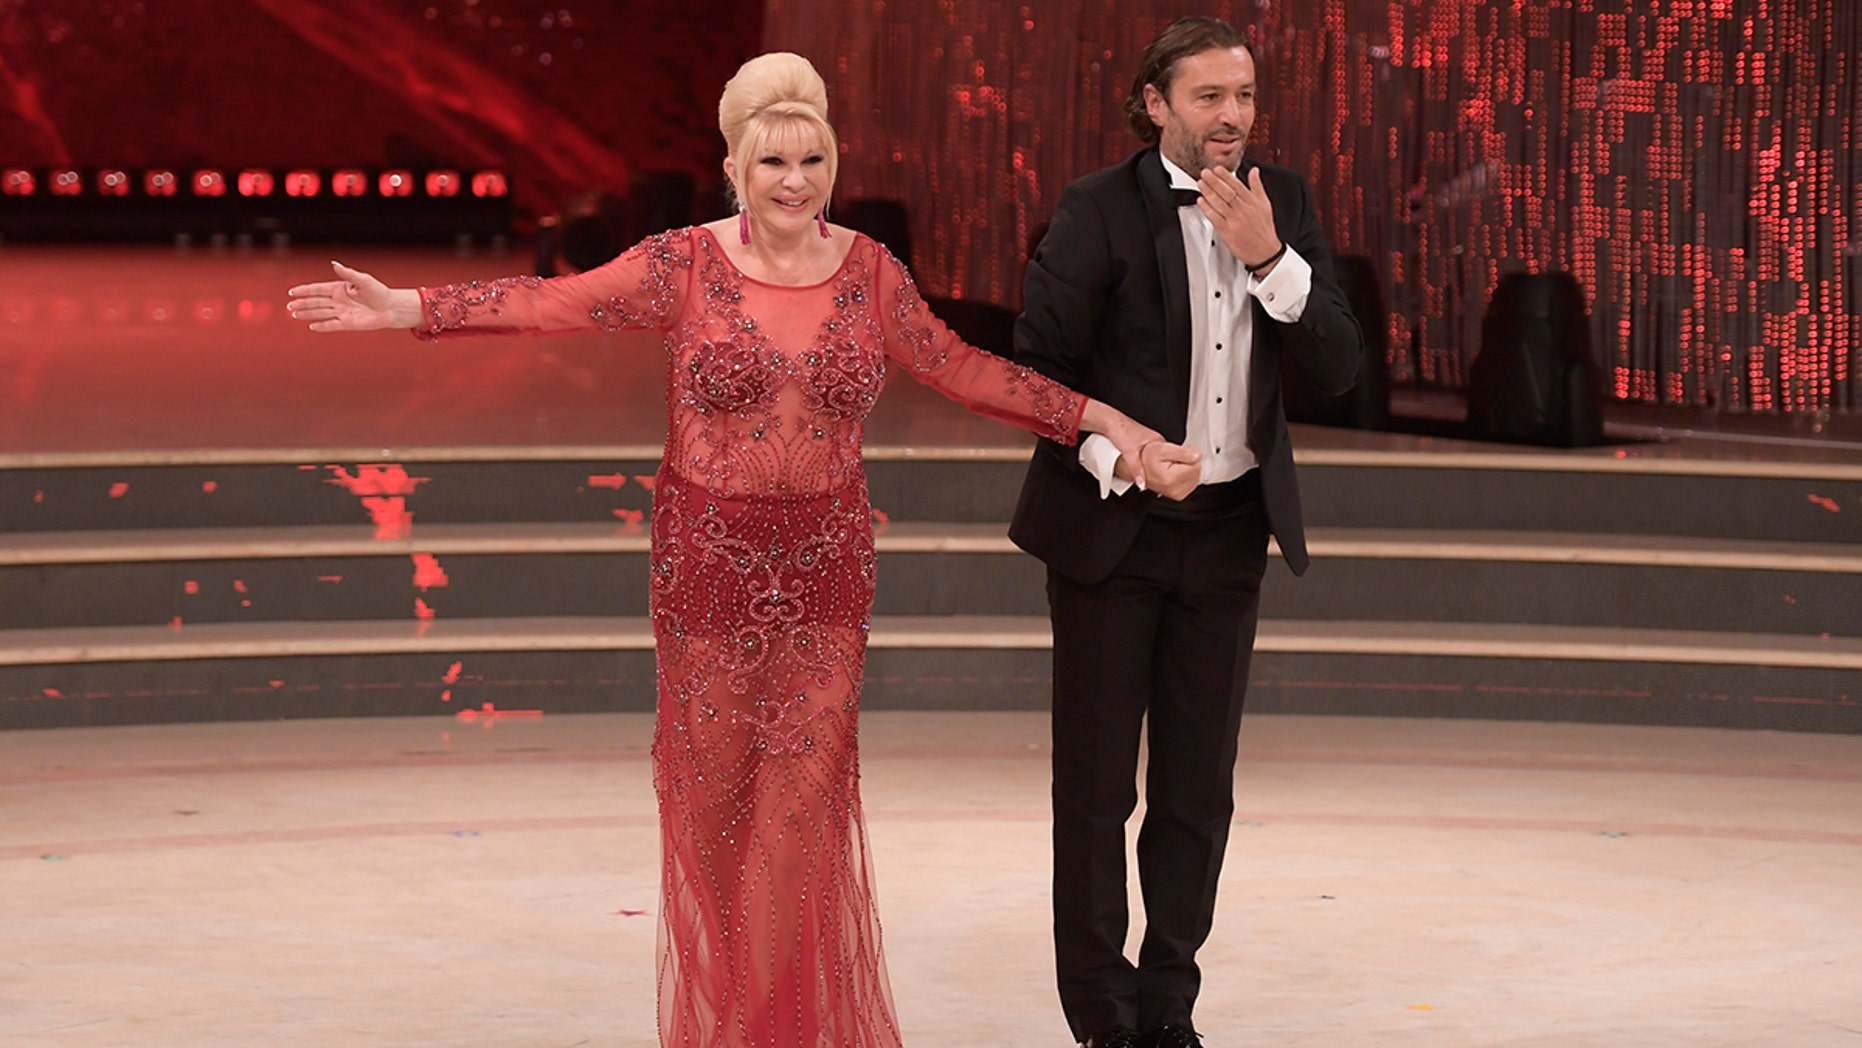 Ivana Trump dropped in on Italy's 'Dancing with the Stars' in a see through red dress.